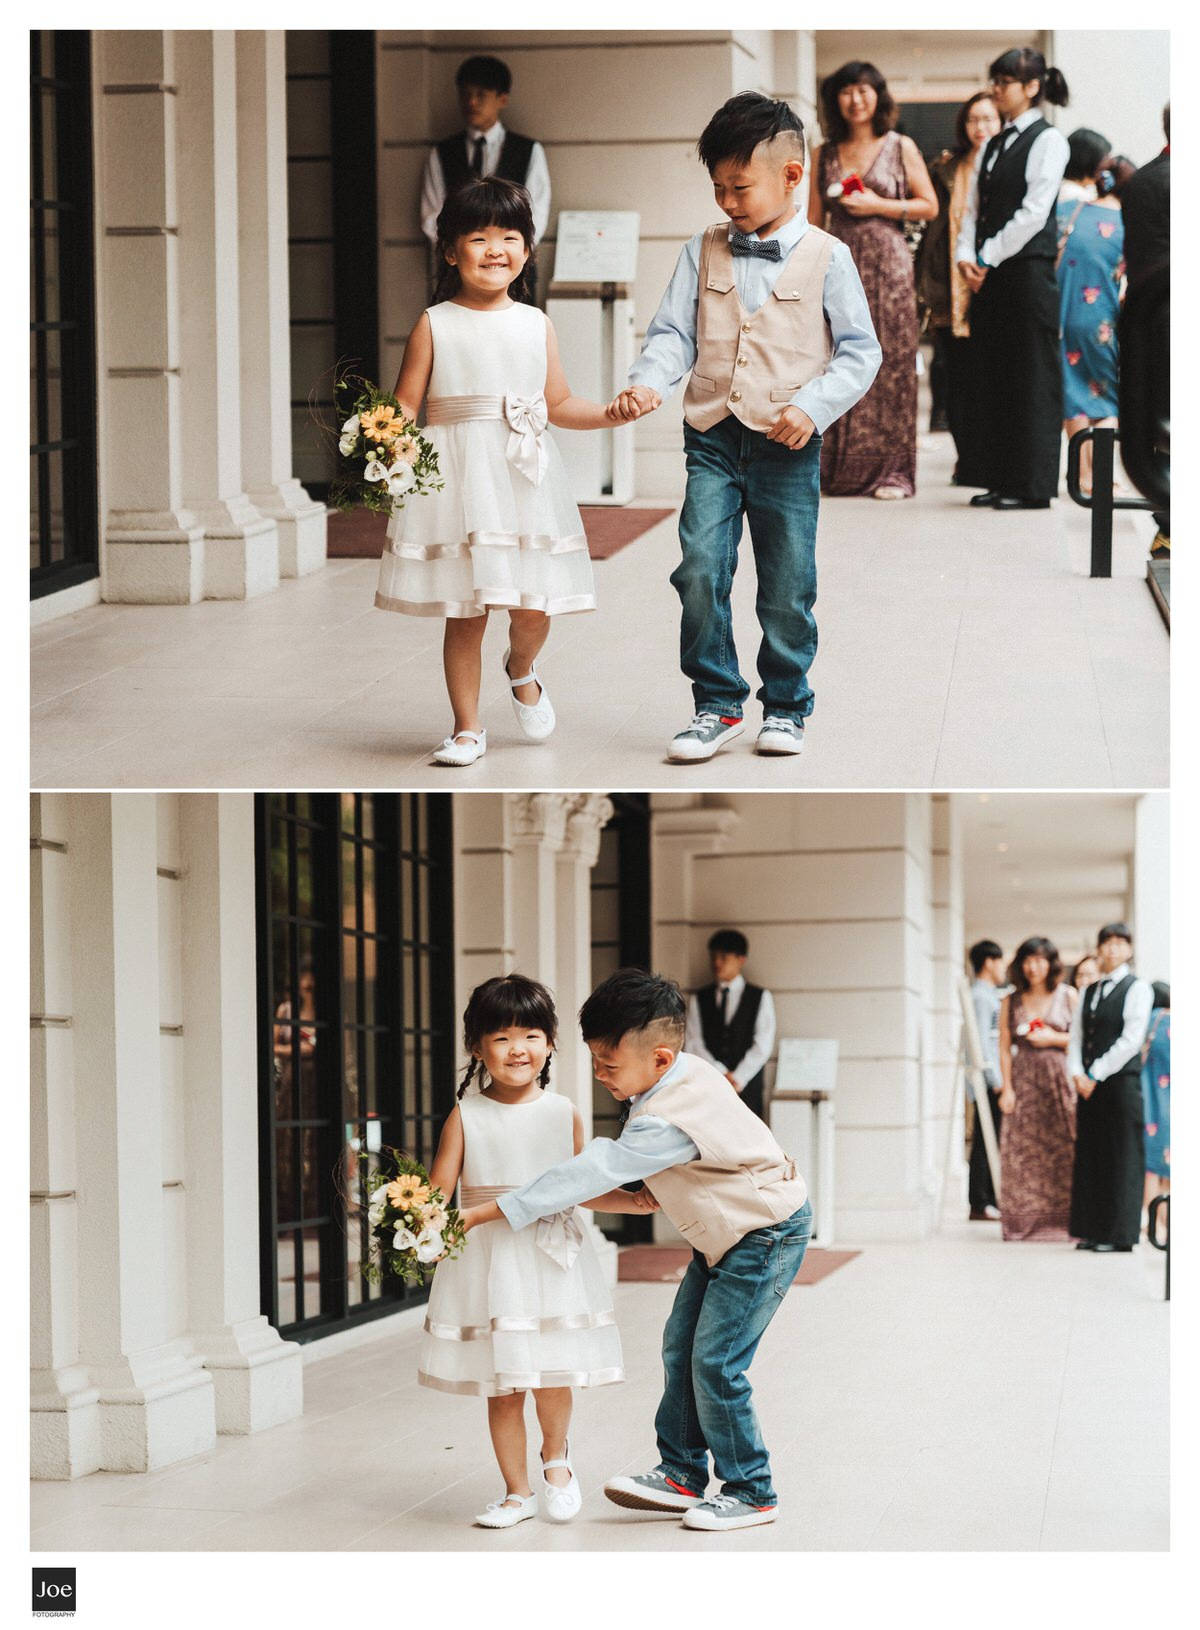 080-felicite-wedding-photo-wentin-joe-fotography.jpg